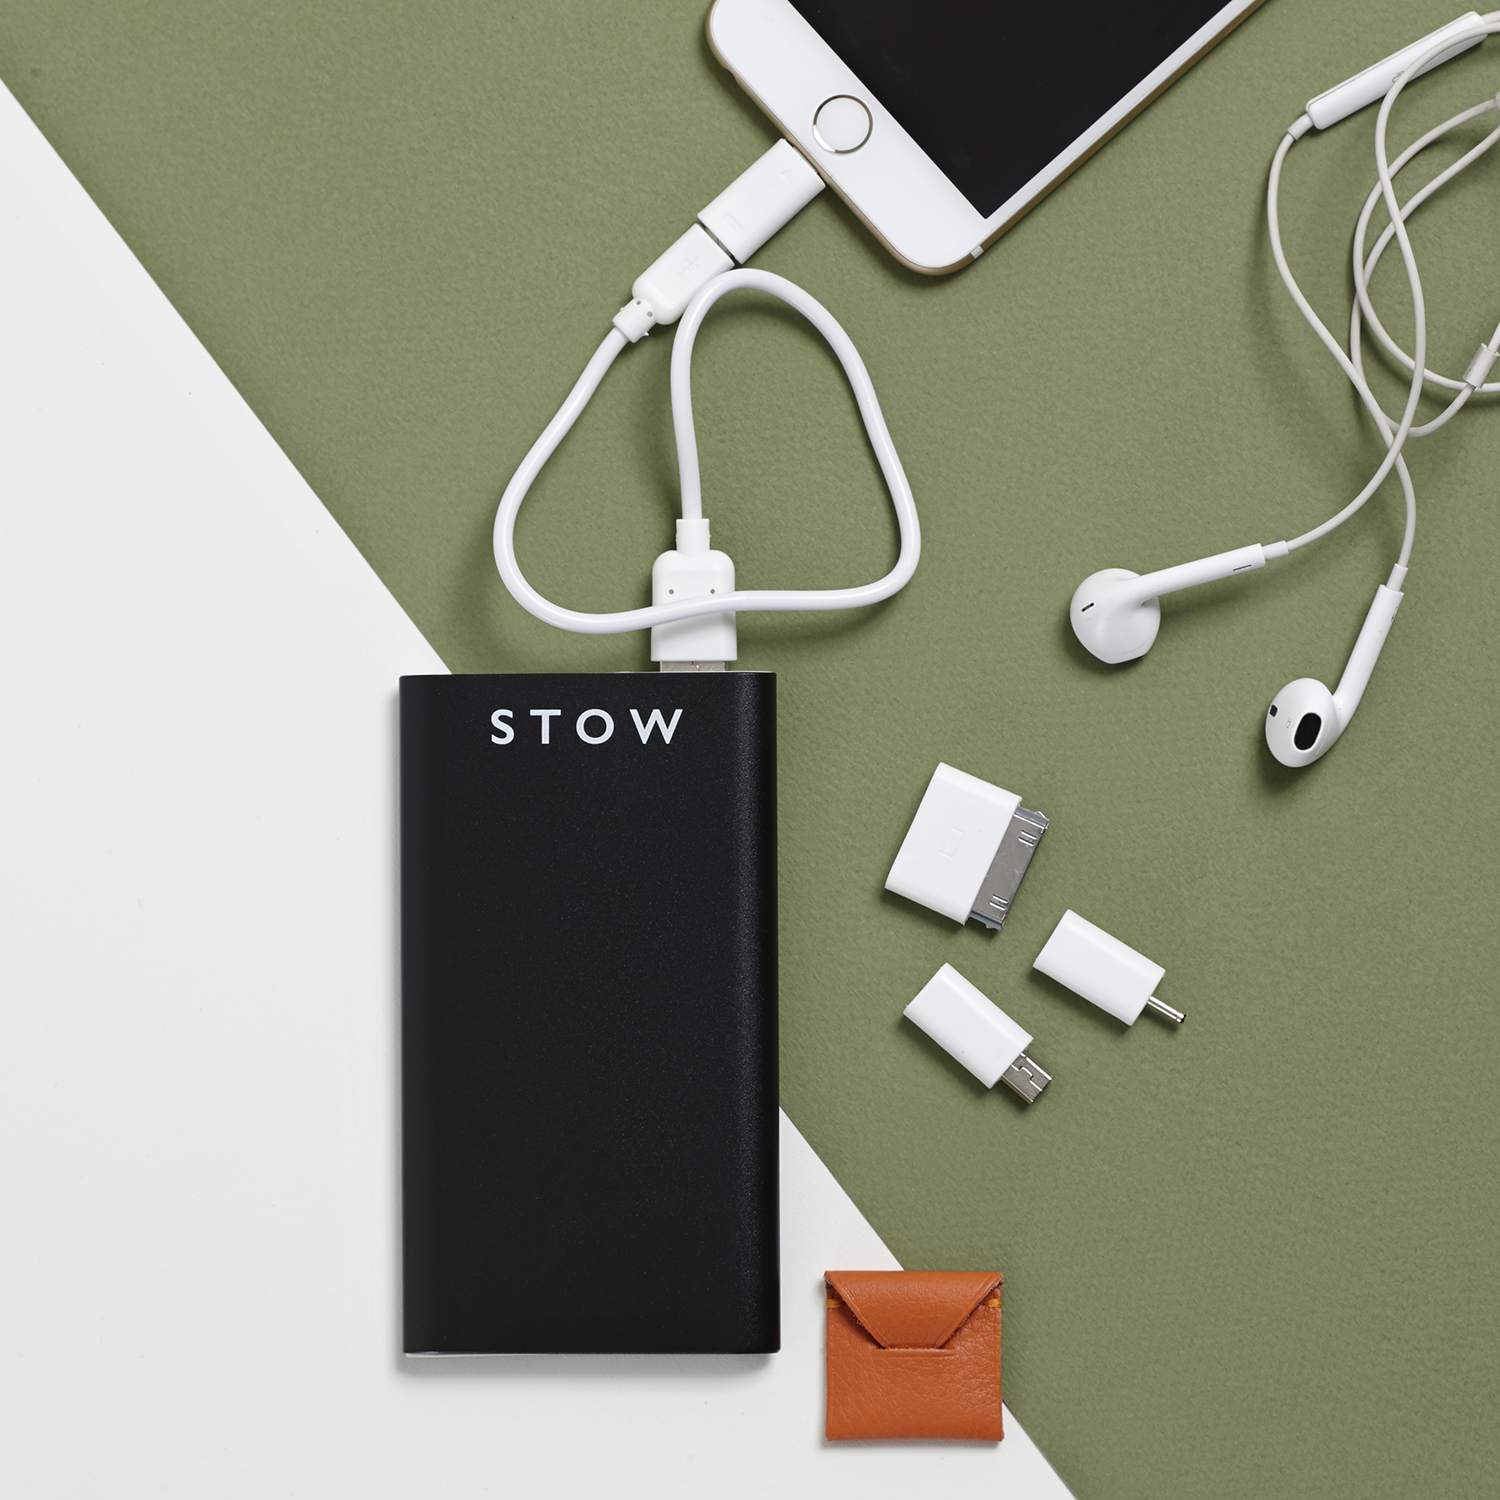 Stow power bank and apple adaptors .jpg